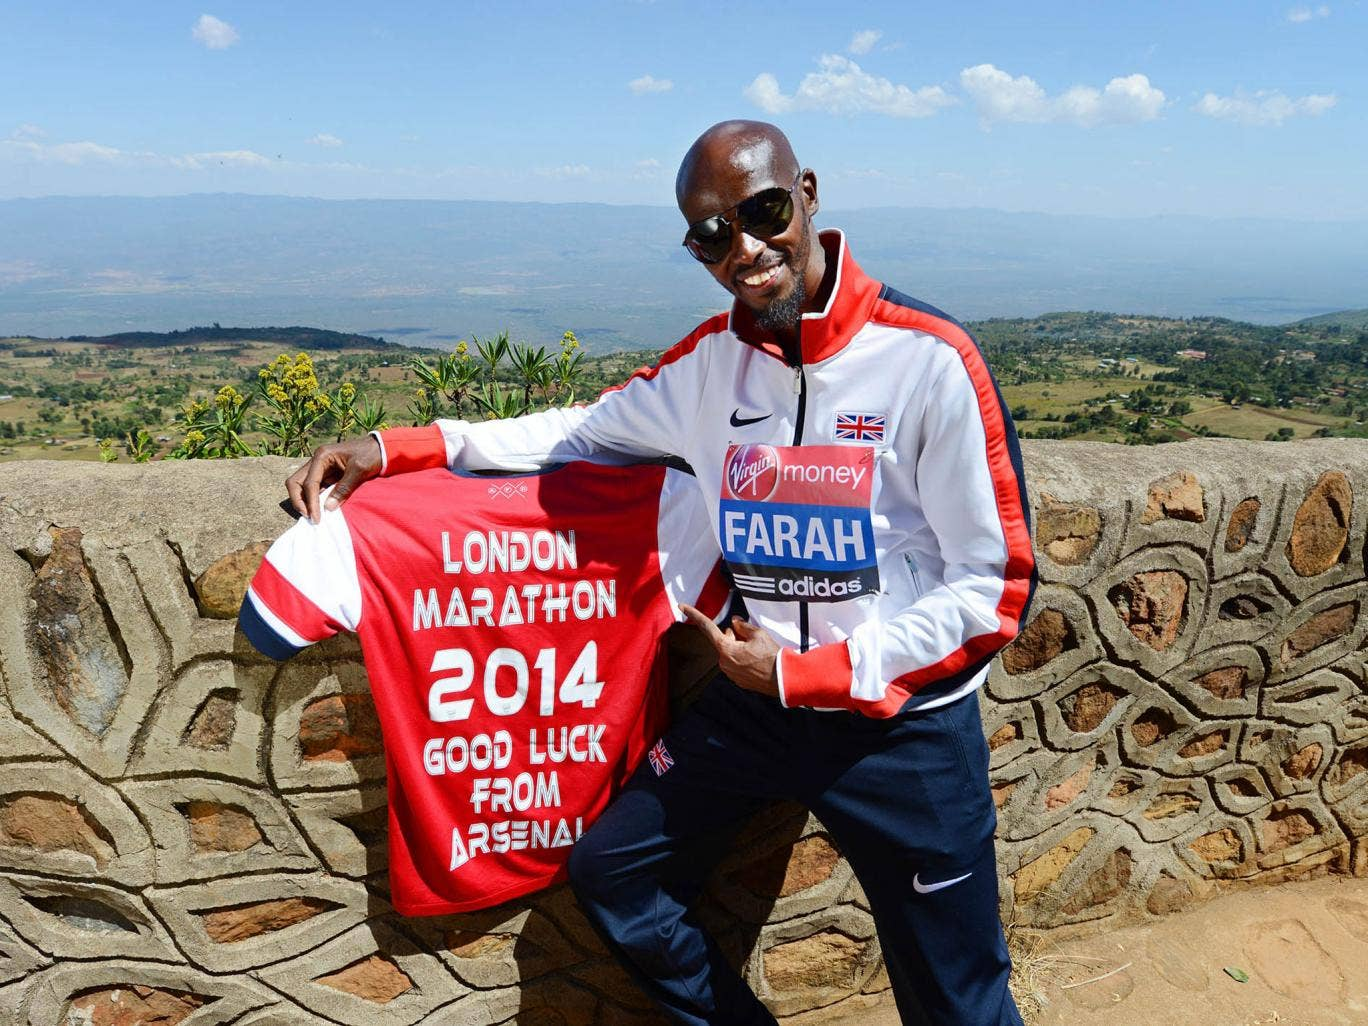 Mo Farah enjoys few home comforts in Kenya, but he does have his beloved Arsenal shirt